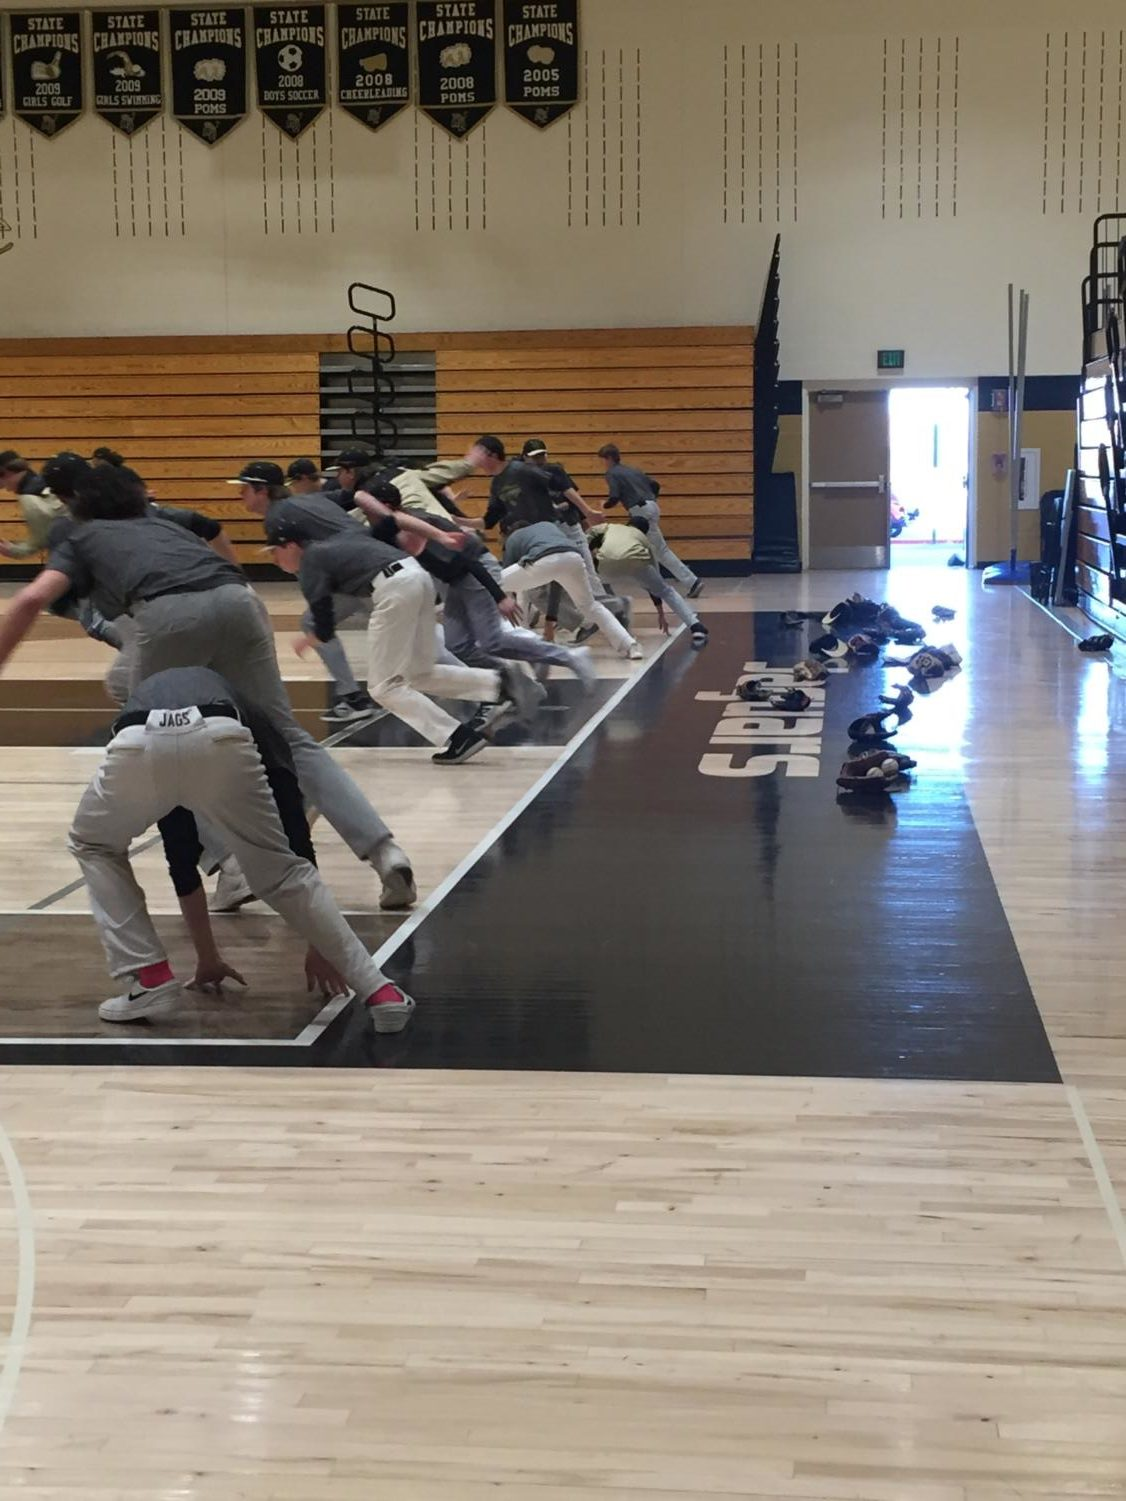 The boys baseball players reach down to touch the baseline for another sprint in the main gym during practice, Monday, Mar. 5.  The boys baseball practice had been moved inside due to strong winds and cold temperatures outdoors.